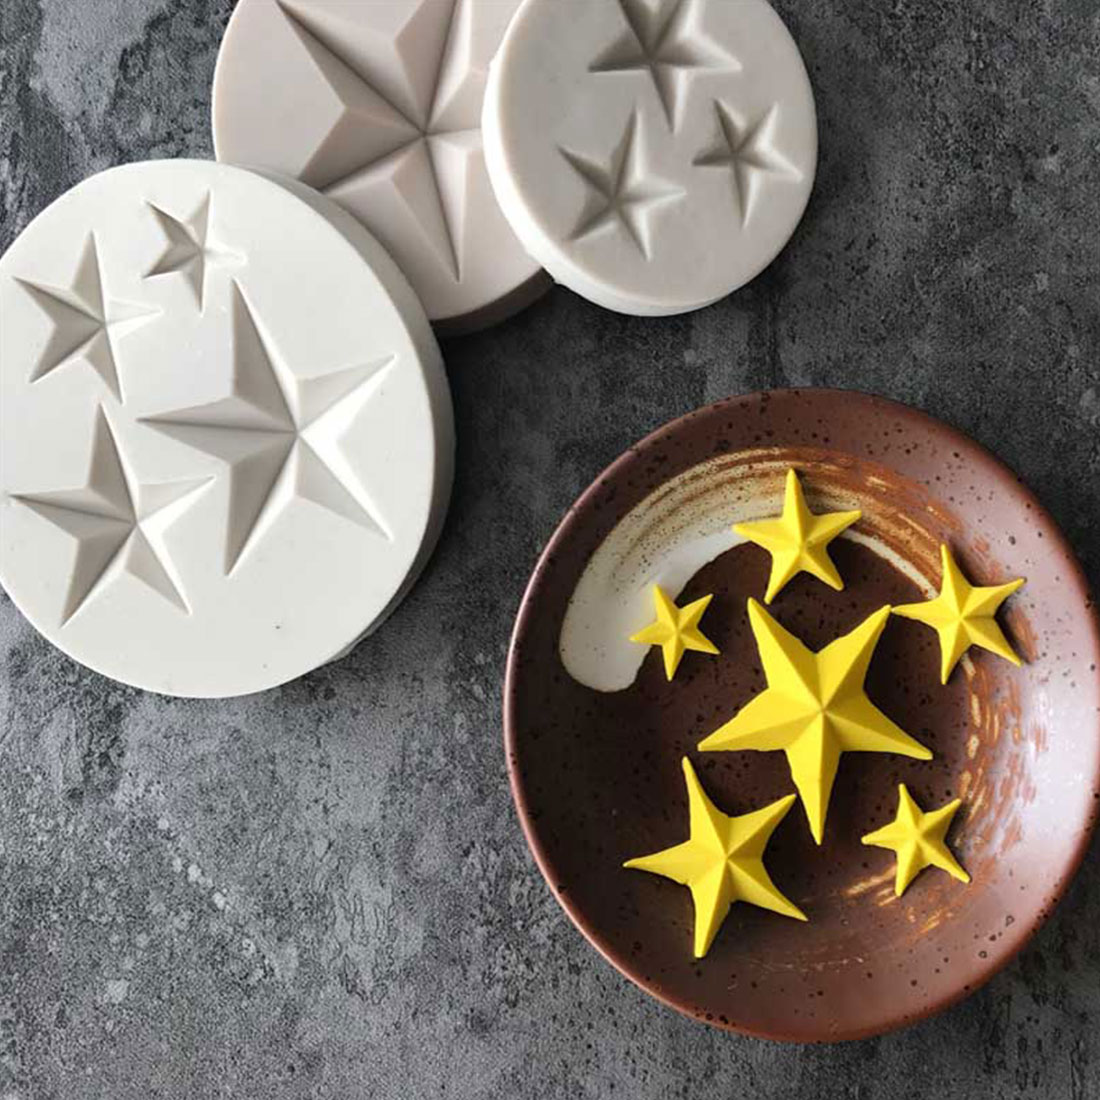 Hot Sale Five-pointed Star Fondant Cake Silicone Mold DIY Candy Cookie Cupcake Molds Baking Decorating Tools Biscuits Mould